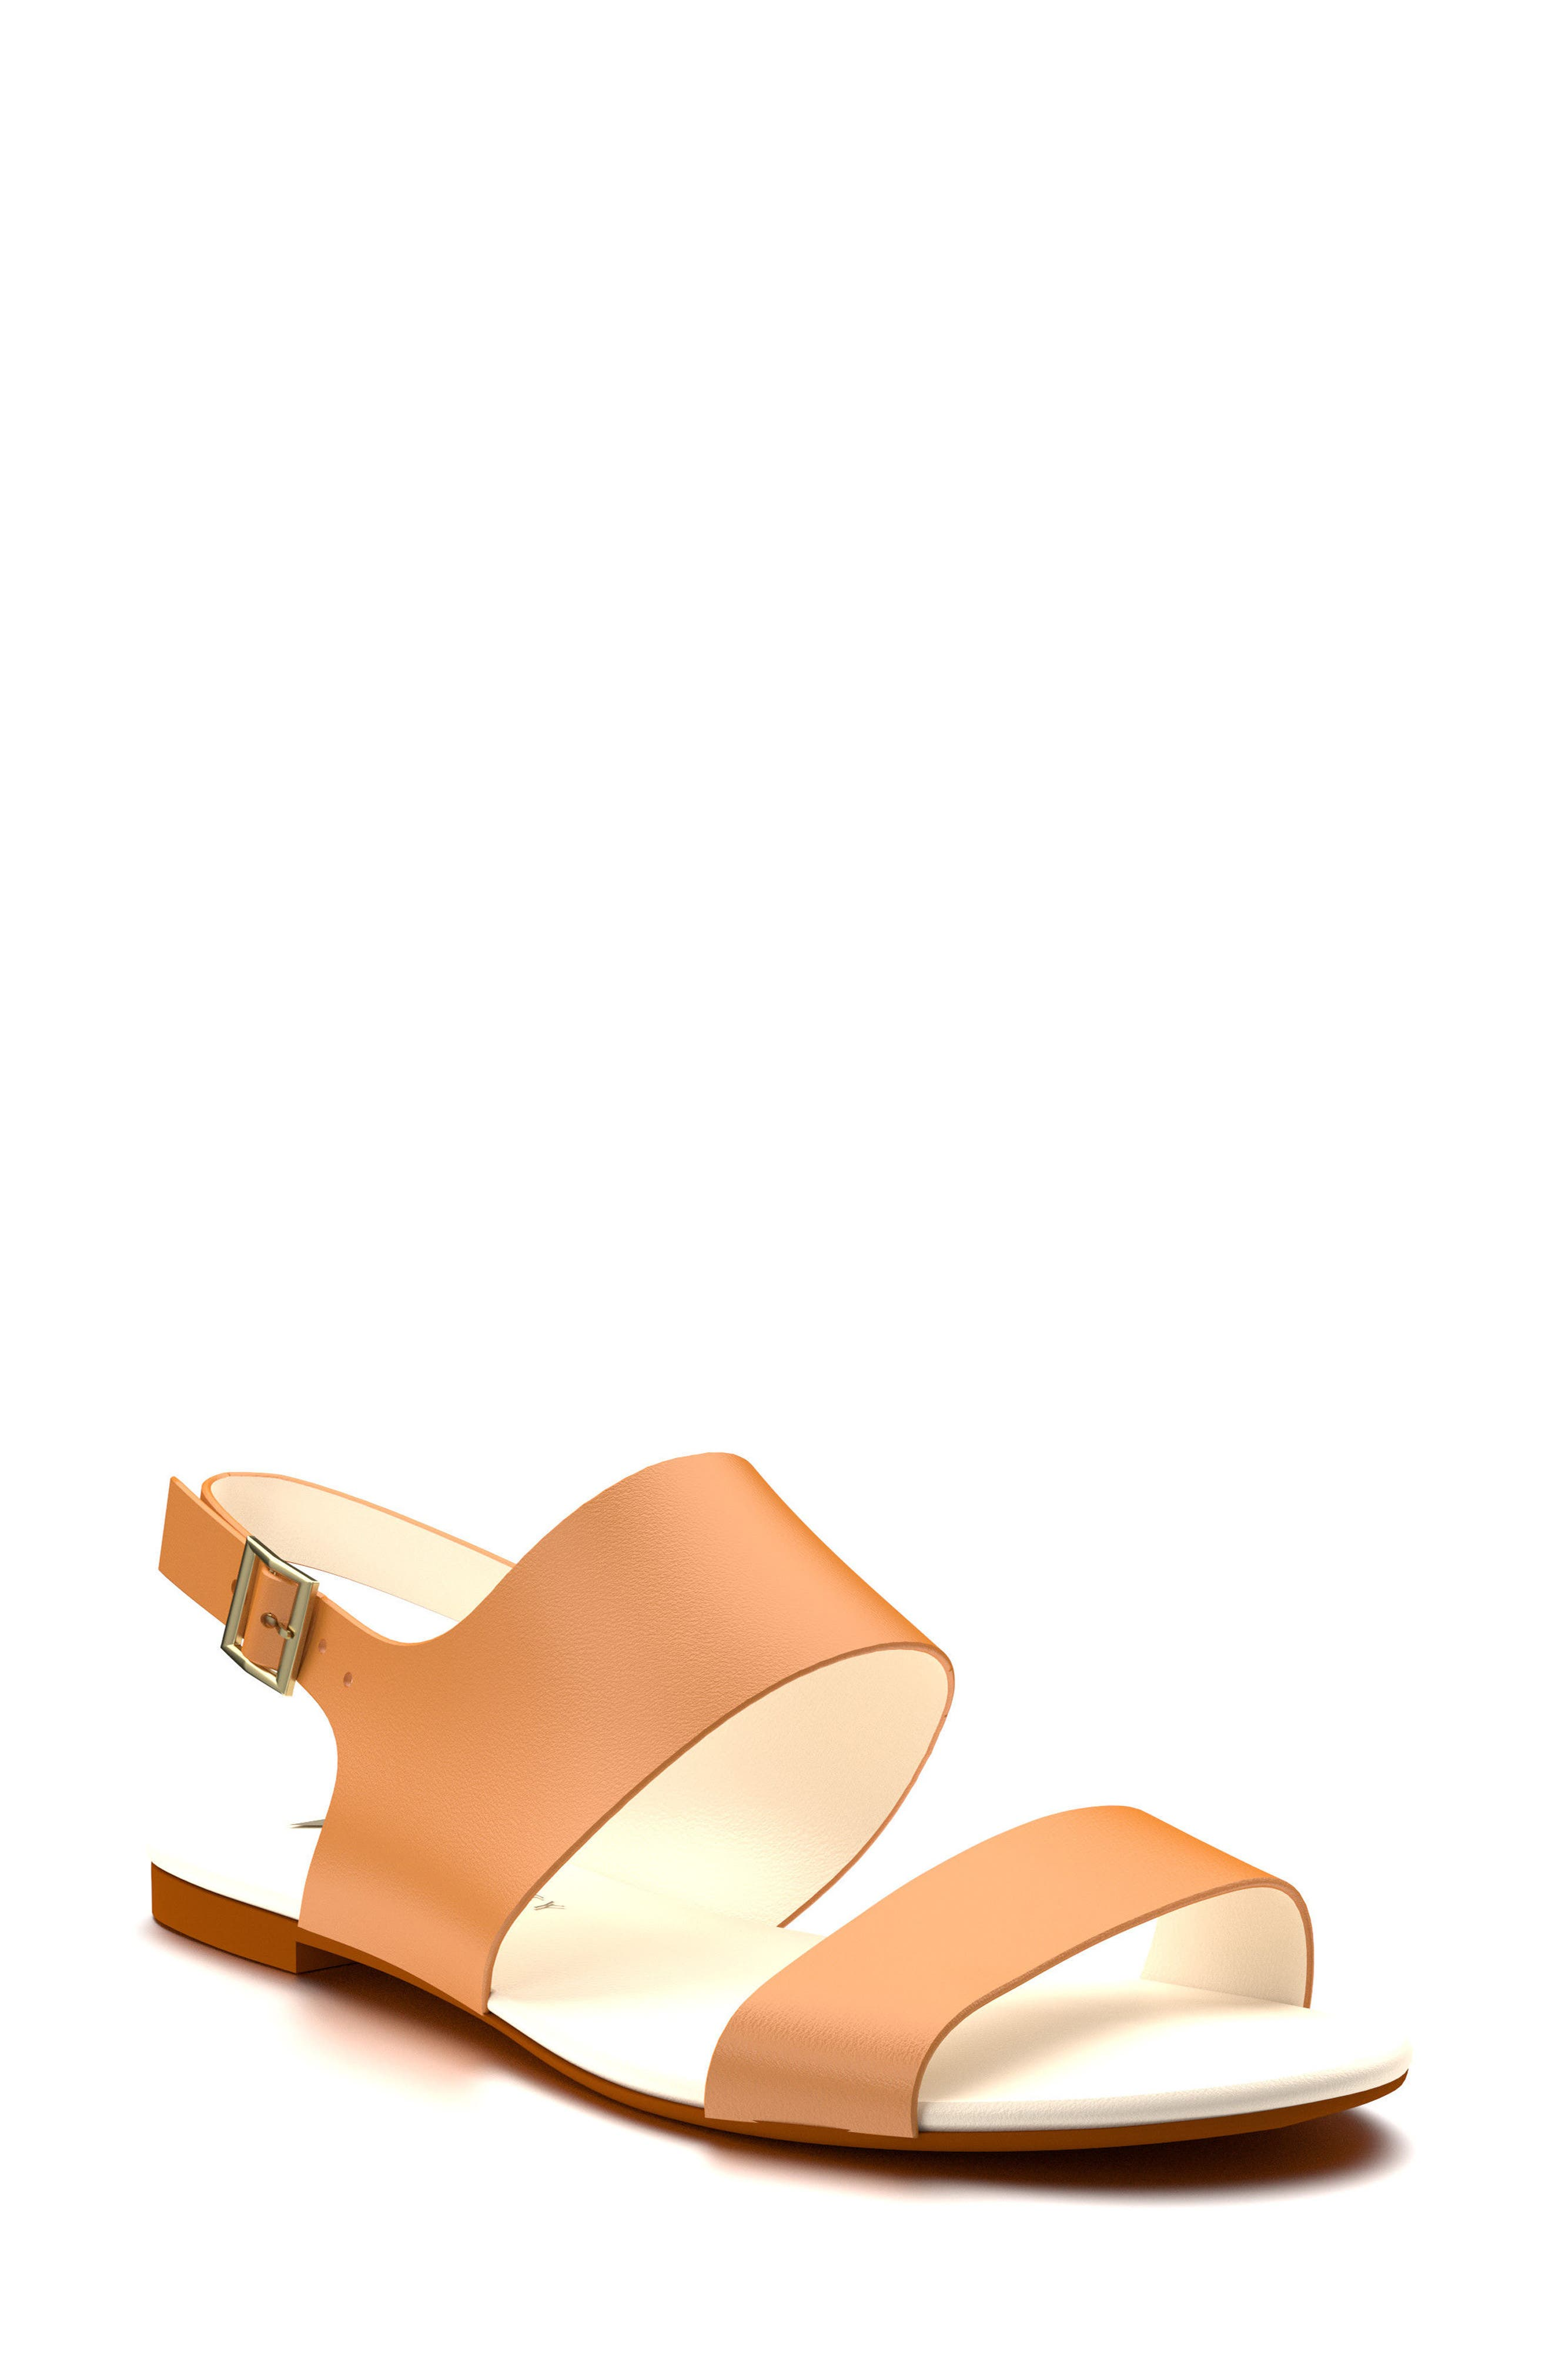 Shoes of Prey Slingback Flat Sandal (Women)